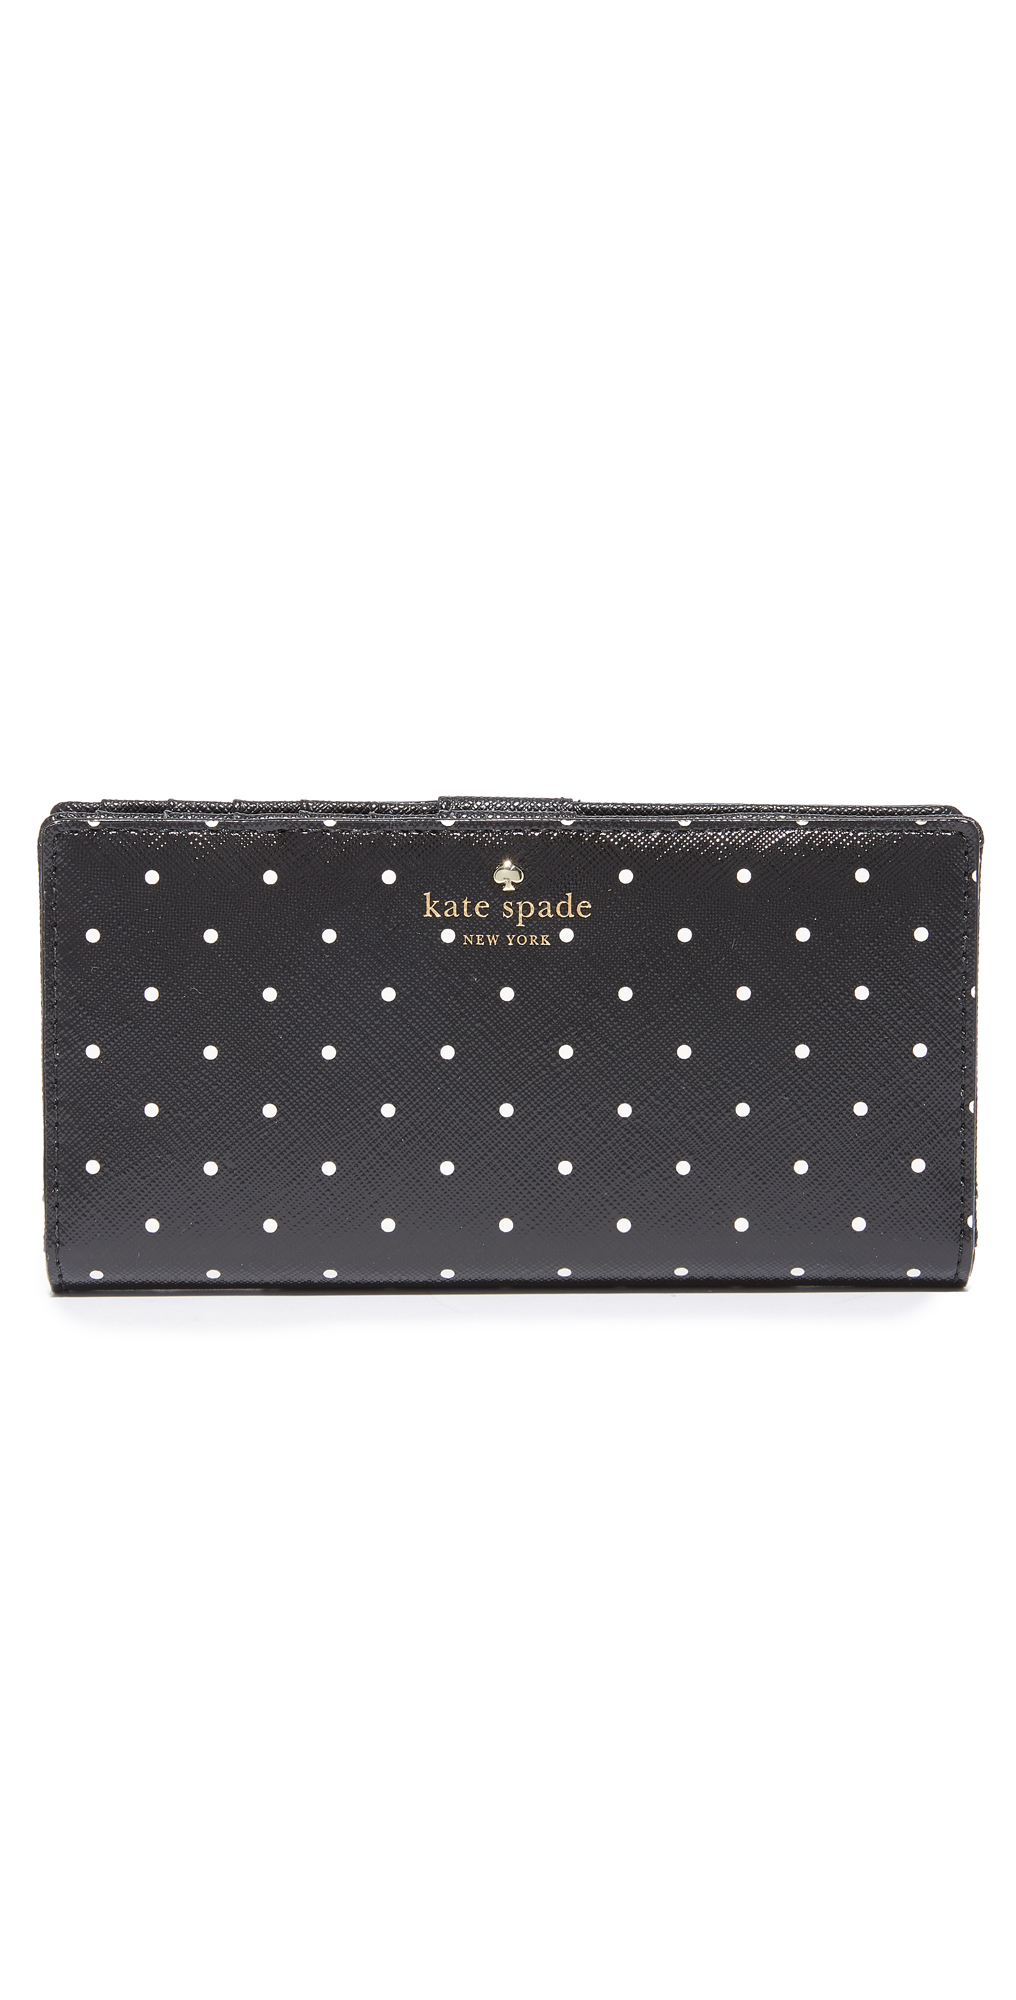 Stacy Wallet Kate Spade New York